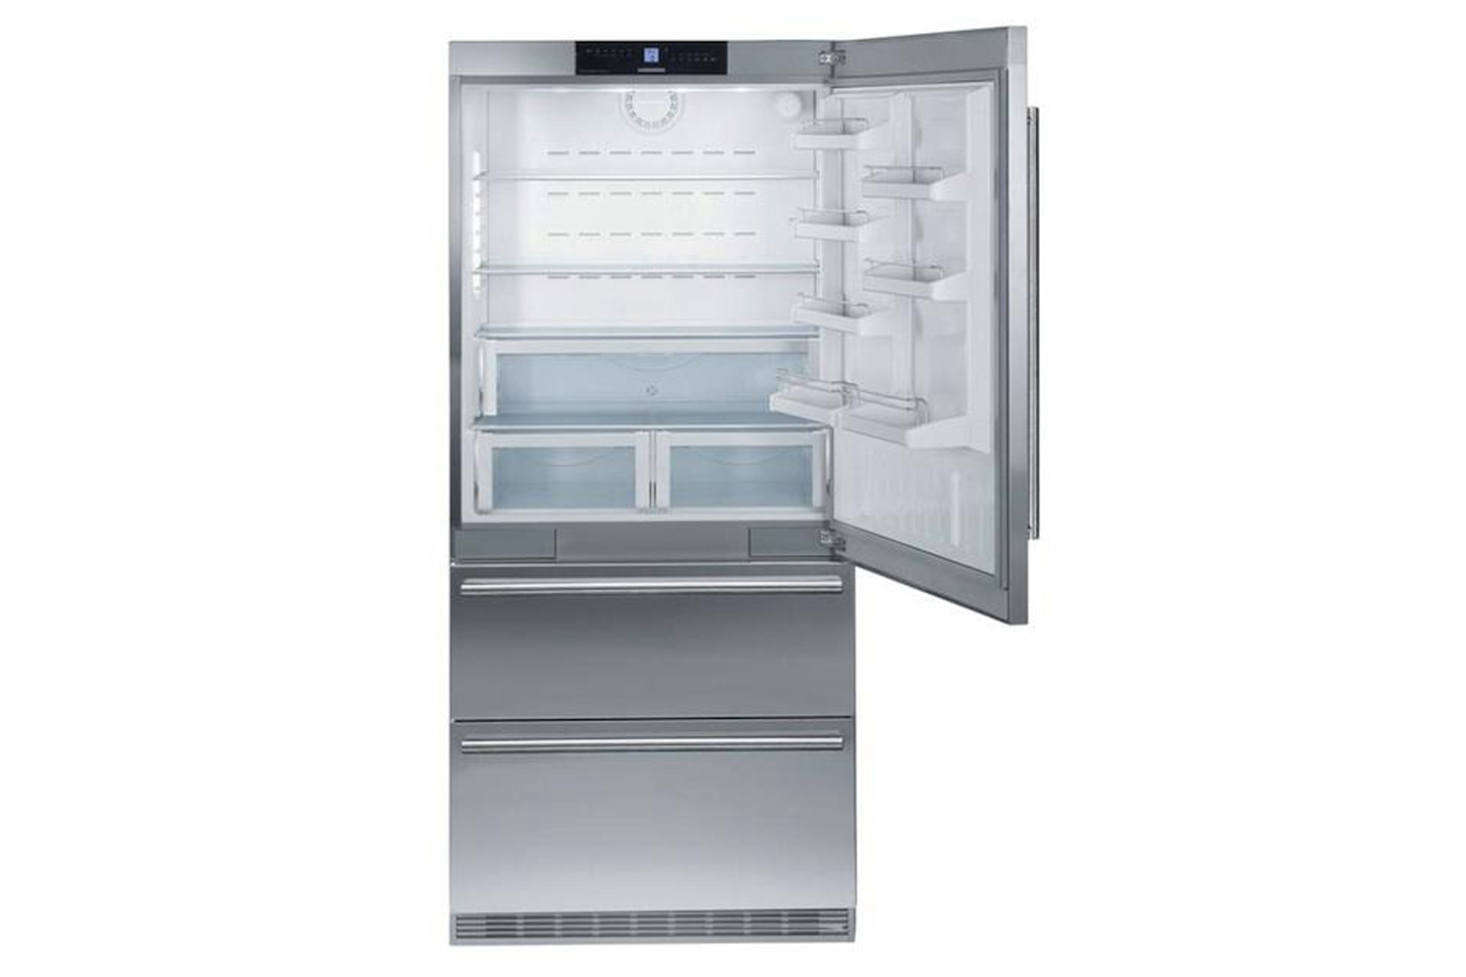 The Leibherr HC-2060 Built-In 36-Inch Refrigerator offers dual-compressor refrigeration at a significantly lower price point than Sub-Zero and Miele; it's Energy Star–rated and has garnered good consumer reviews. The shelving and lighting are not quite at the level of the top brands, but the freezer is conveniently divided into two drawers; $5,349 at Plessers. For more options see our post 10 Easy Pieces: Built-In Refrigerators.